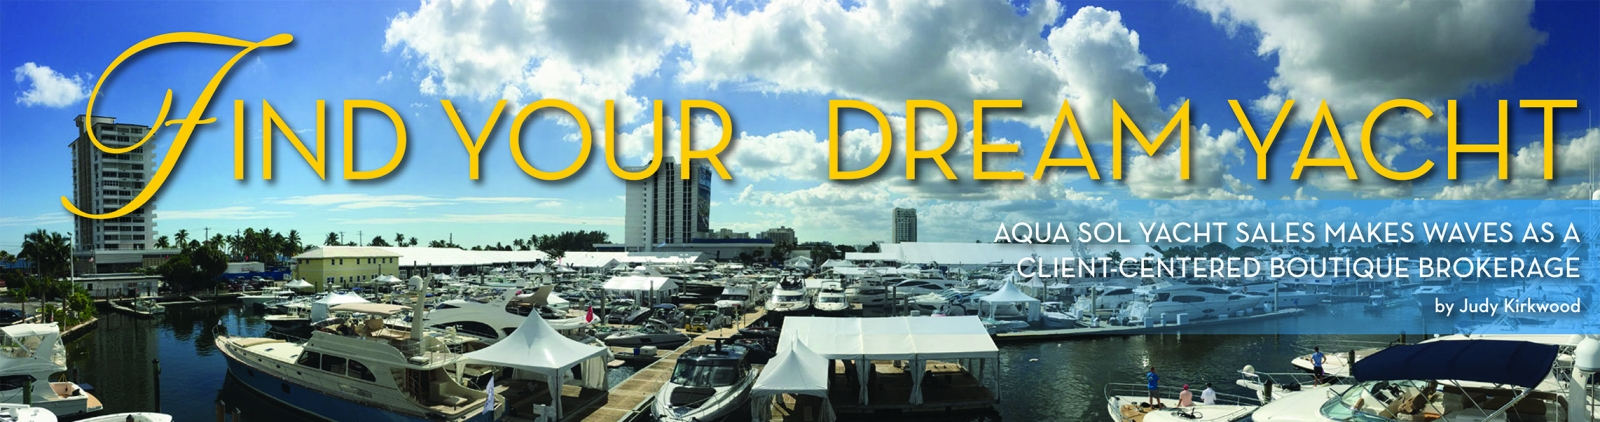 Find your dream yacht - boat show